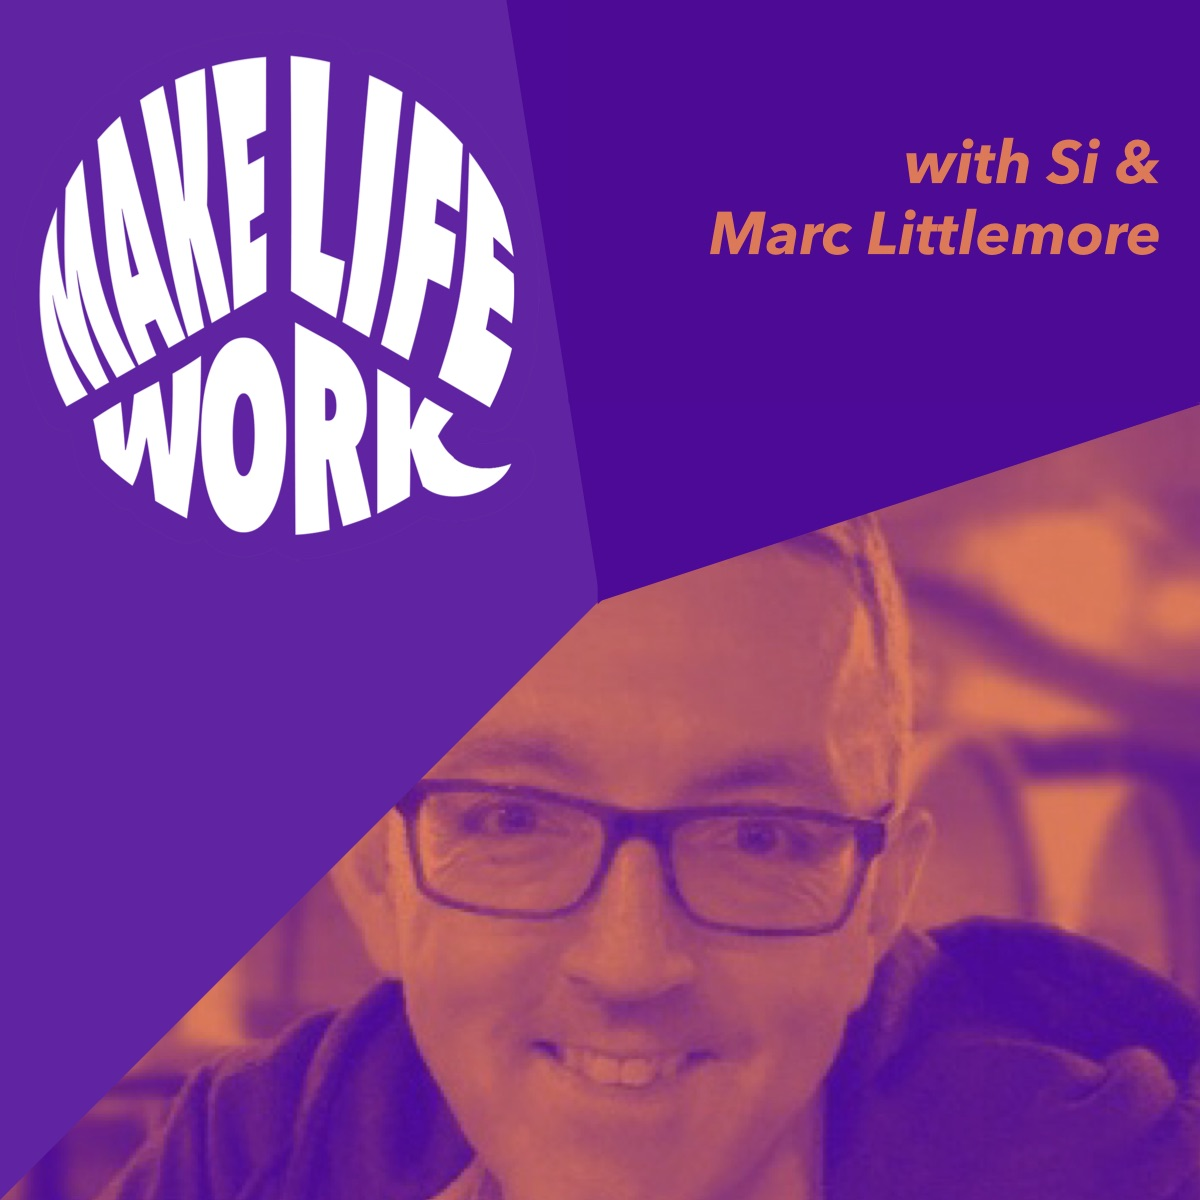 Make Life Work with Marc Littlemore